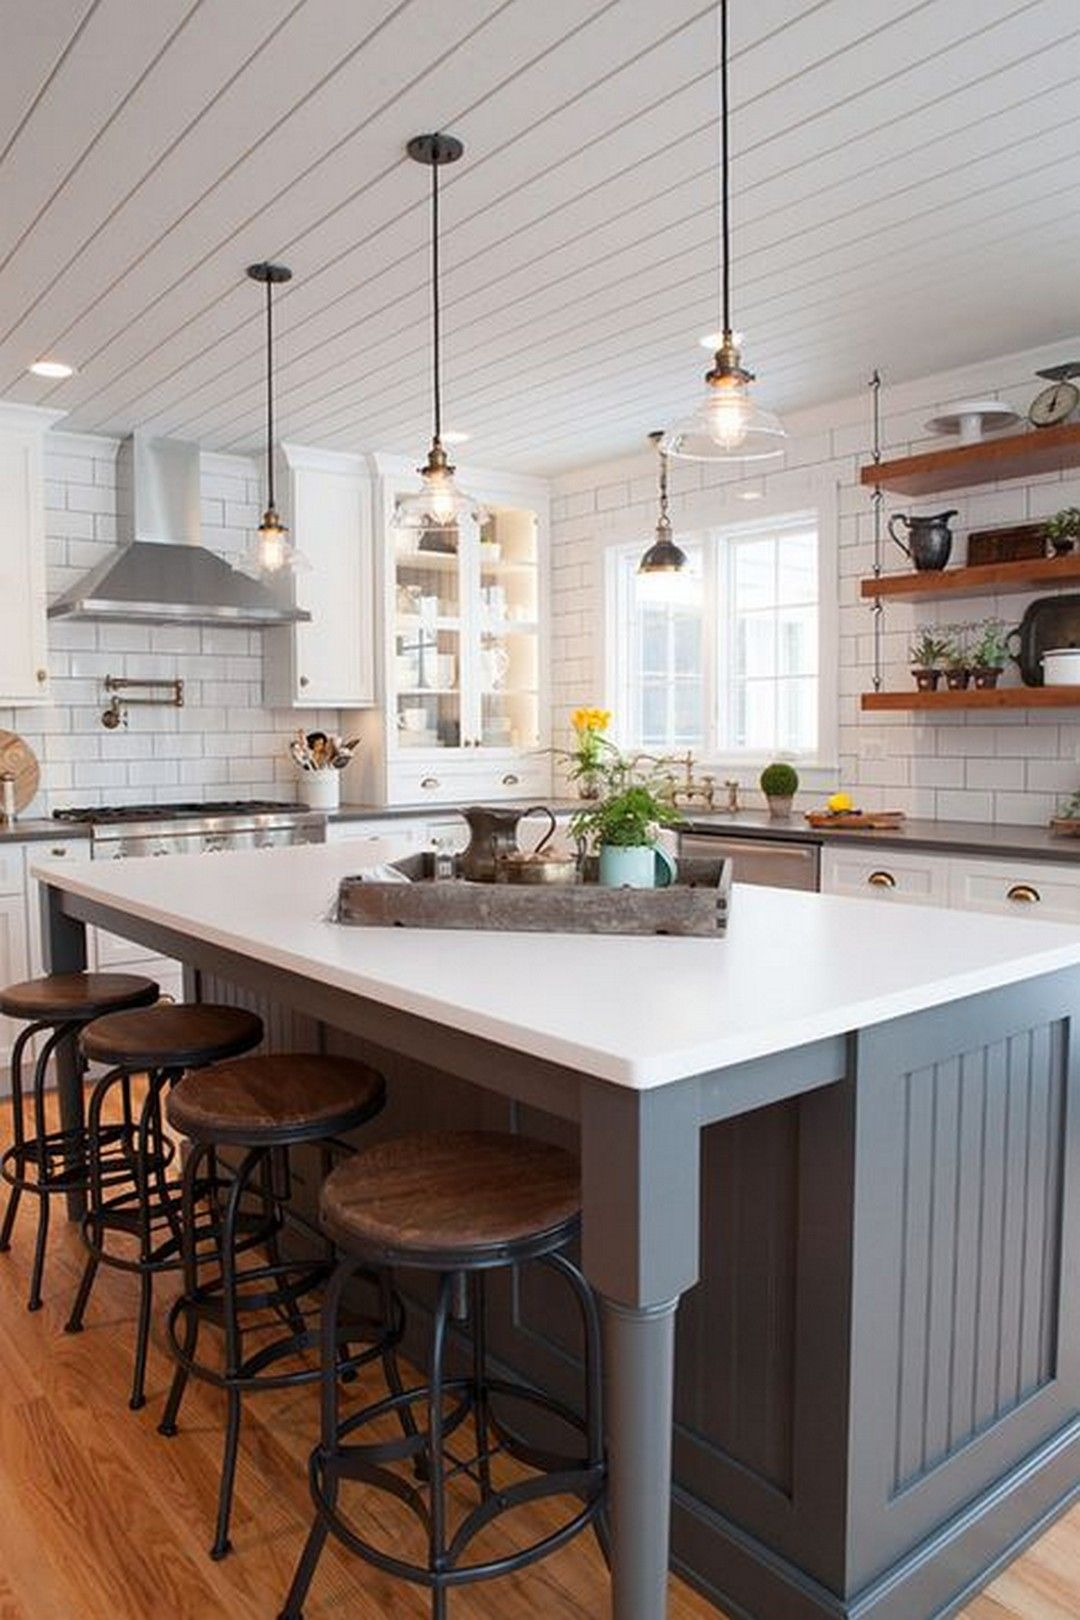 Nice 99 Farmhouse Kitchen Ideas On A Budget 2017 Http://www.99architecture